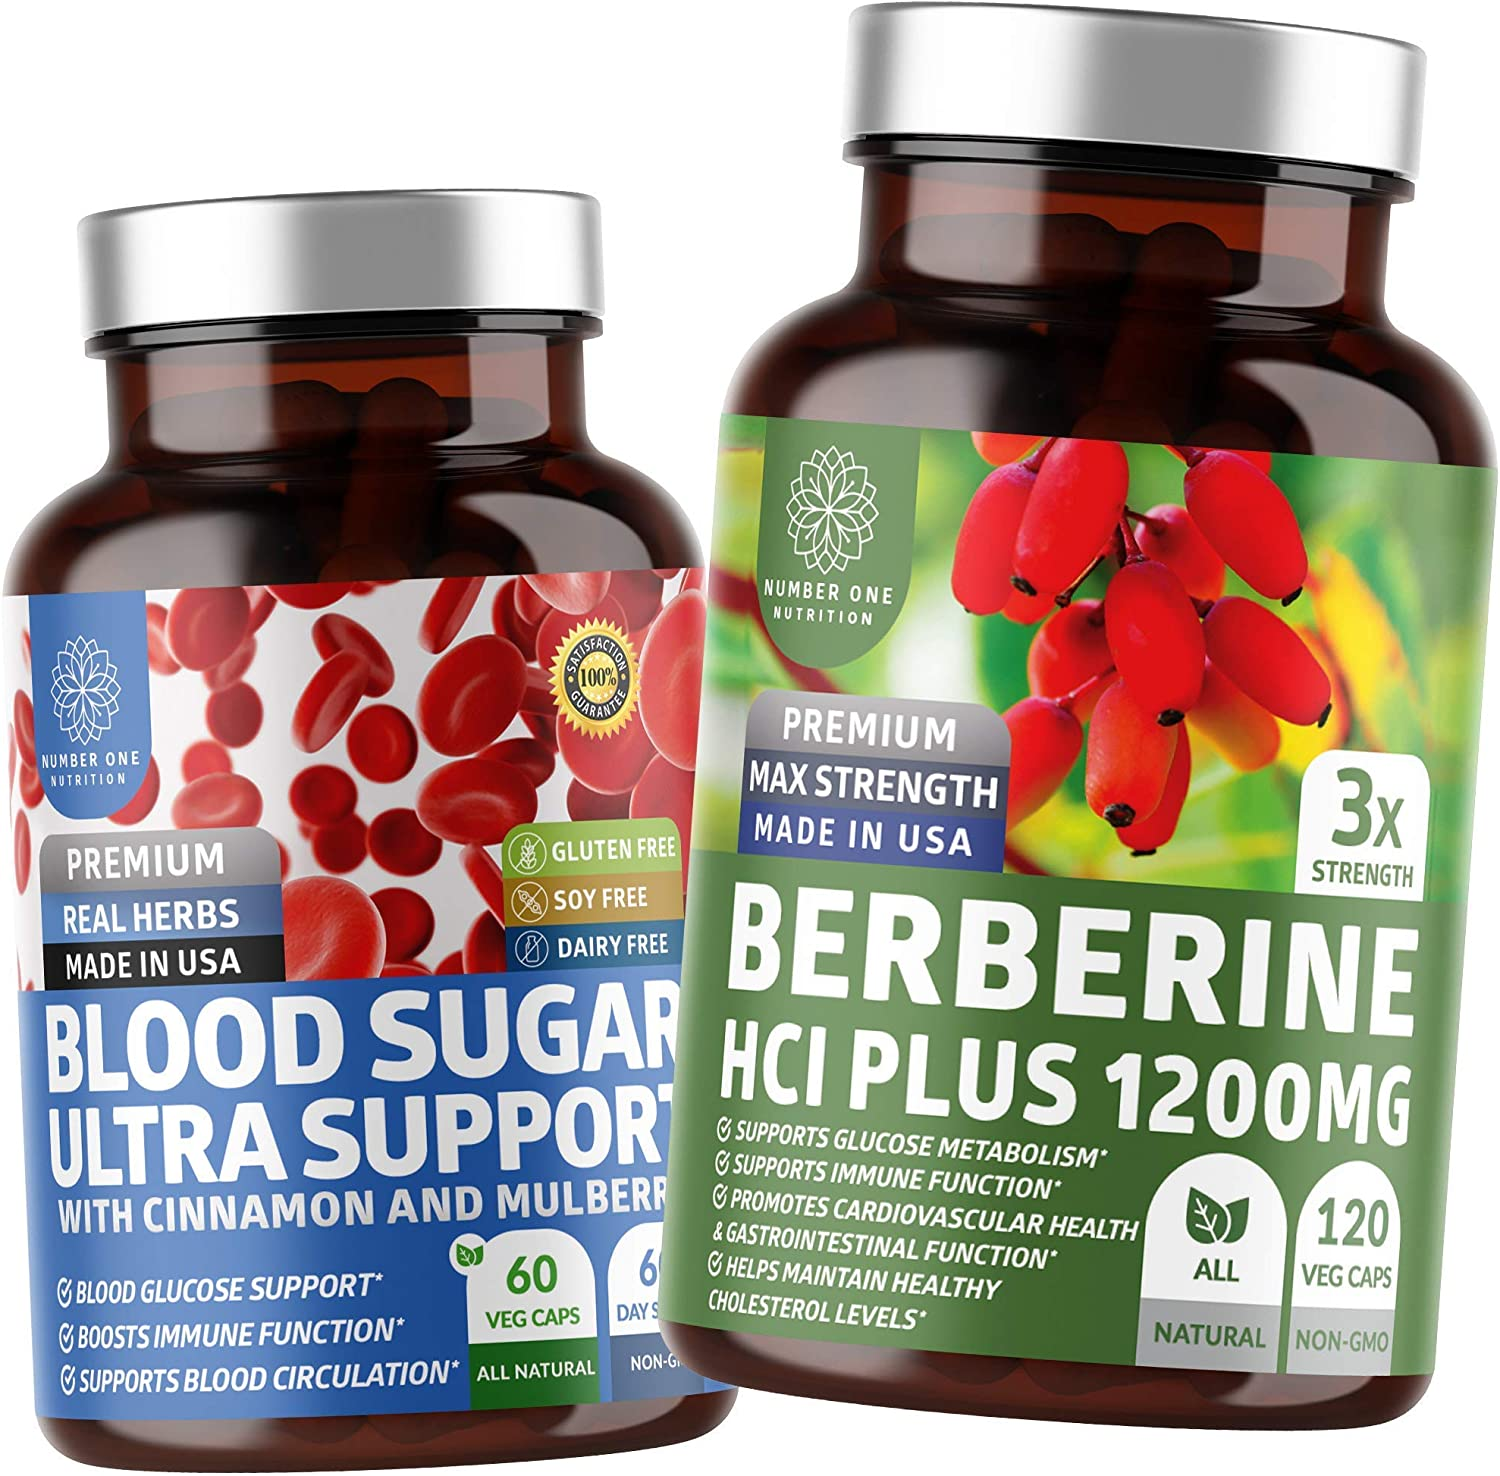 N1N Premium Berberine and Blood Sugar Support, All Natural Supplements for Glucose Metabolism, Weight Loss Management and Heart Health, 2 Pack Bundle